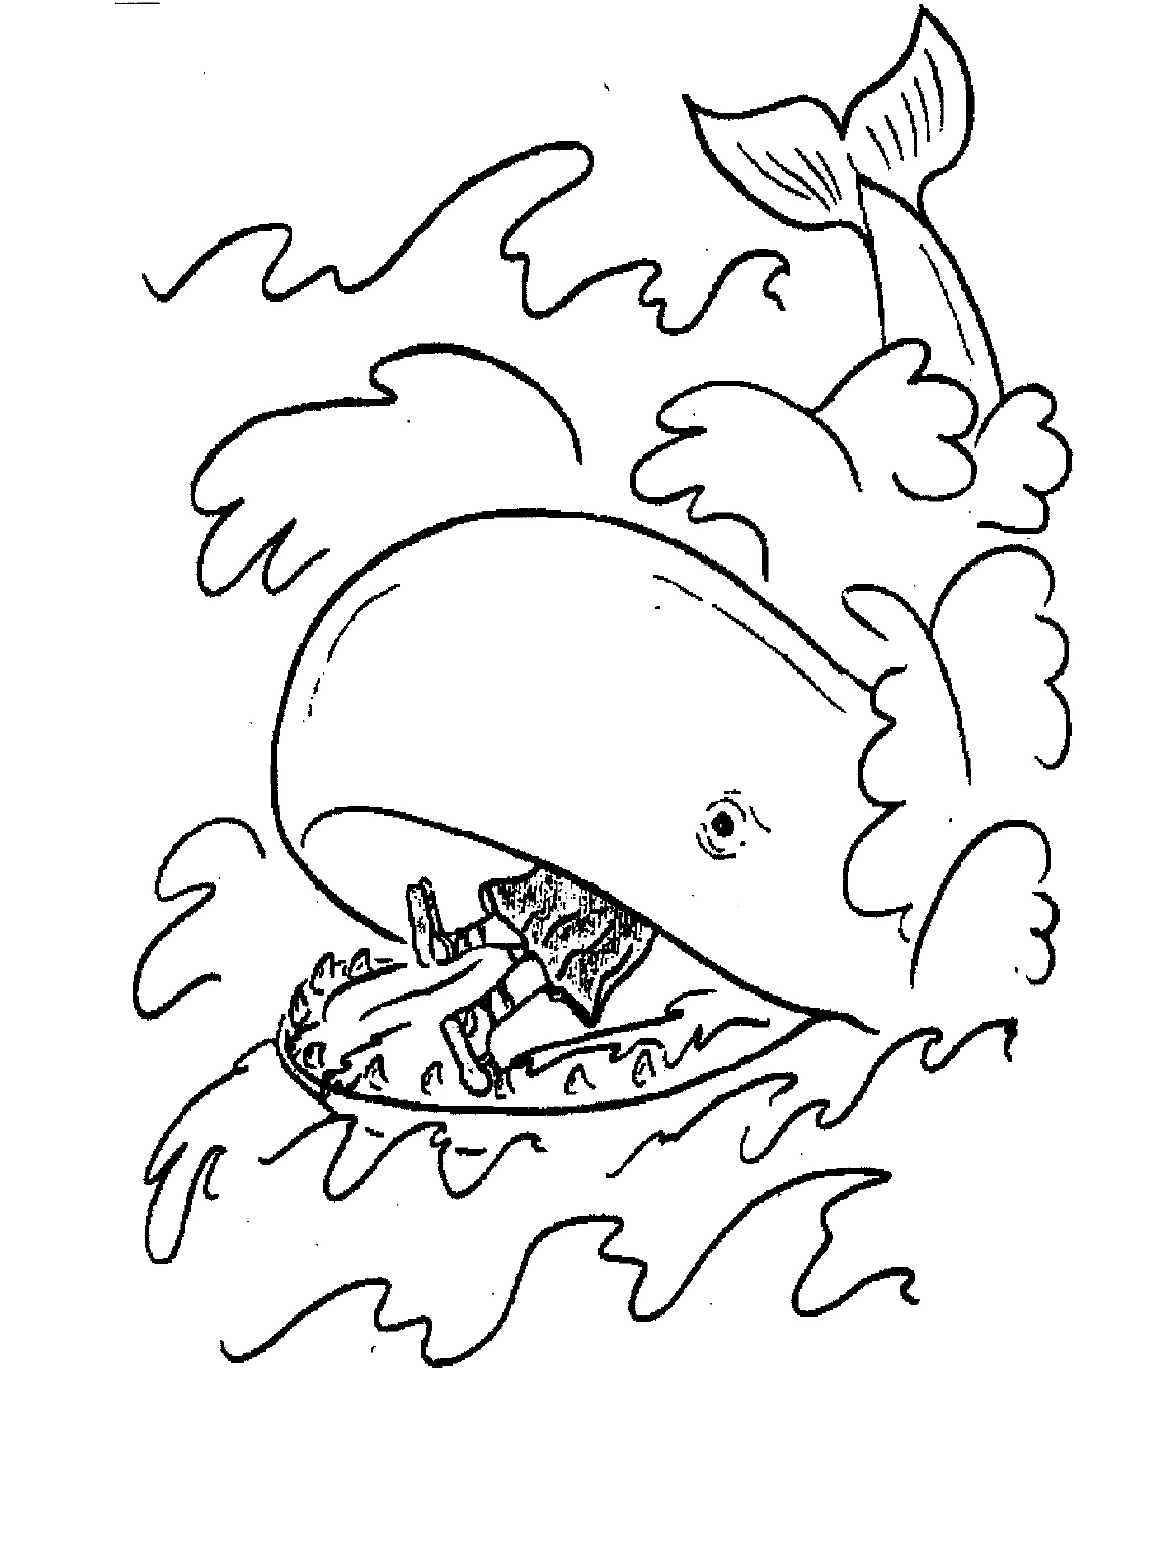 1176x1560 Soar Jonah Coloring Pages Free Printable And The Whale For Kids